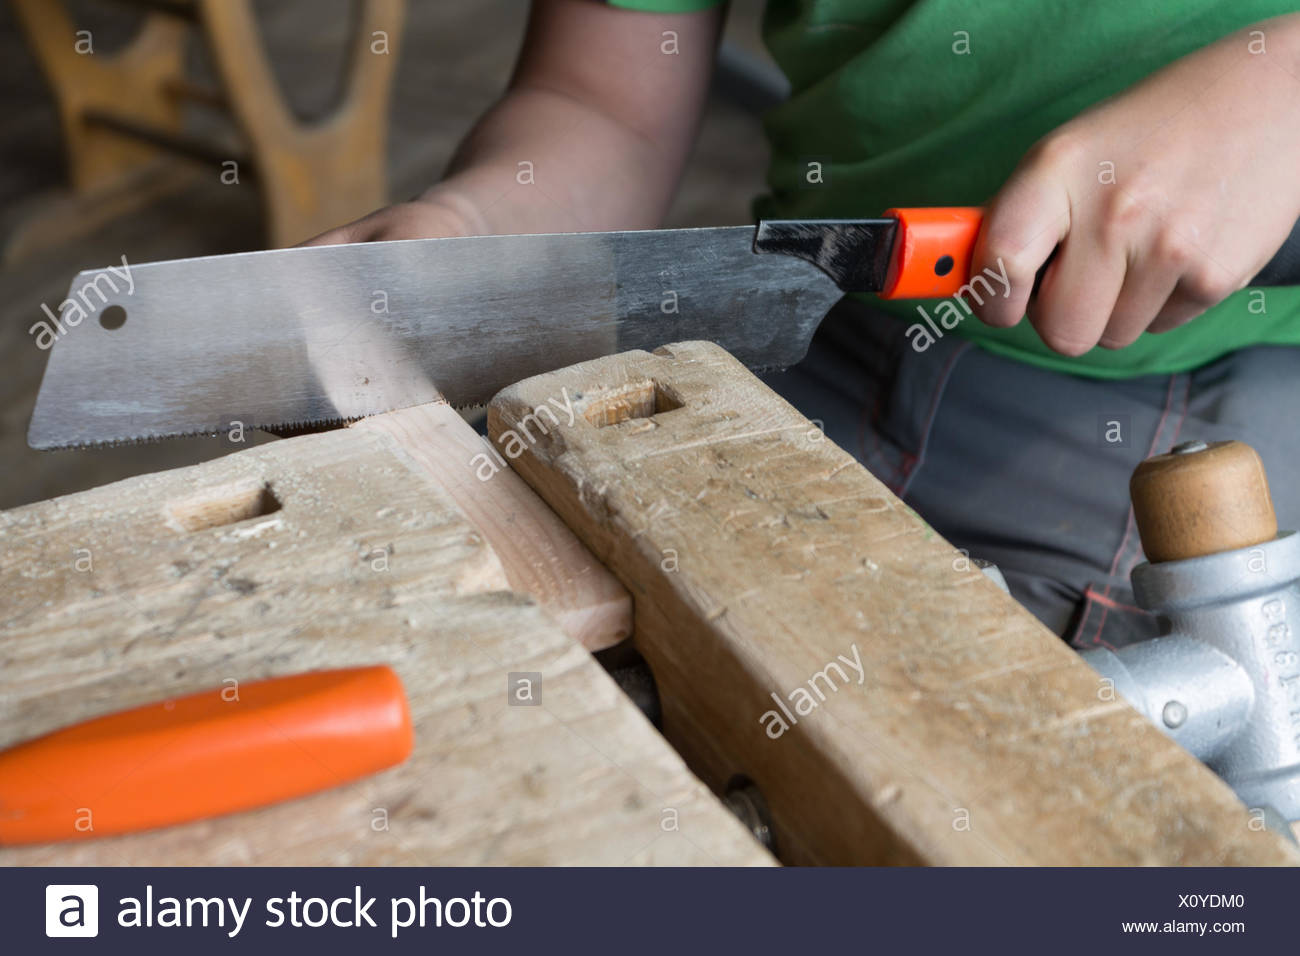 holzwerkbank stock photos & holzwerkbank stock images - alamy